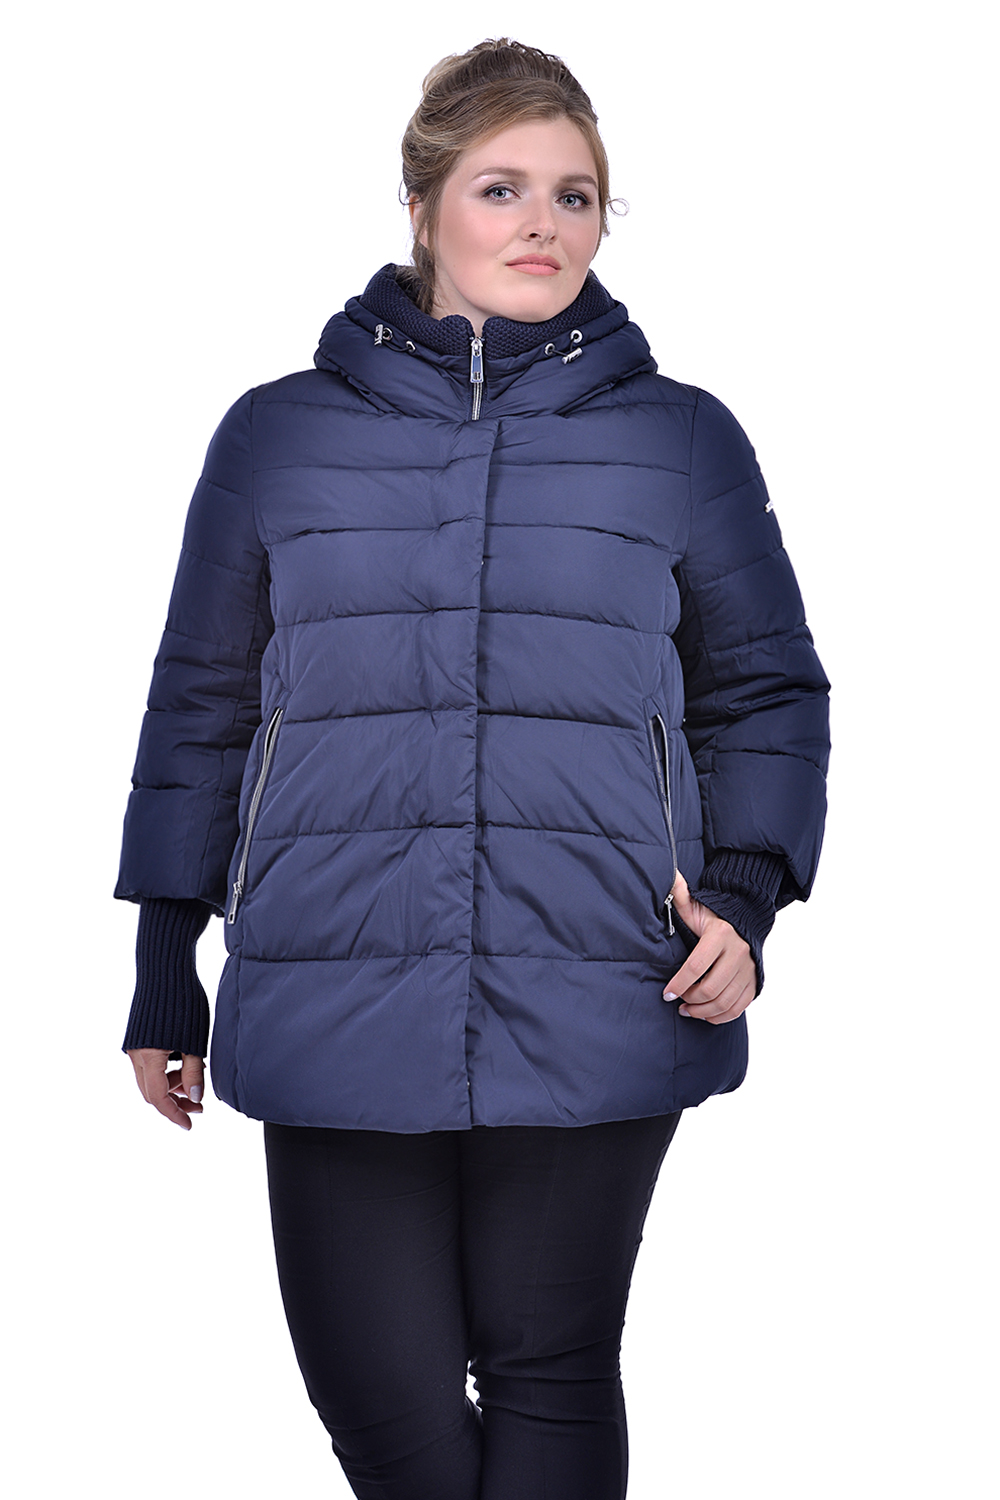 картинка 17-2 DLF 3088 PADDING JACKET (BATTAL) NAVY BLUE пуховик (биопух) жен (2XL-5XL) 4 от магазина Одежда+